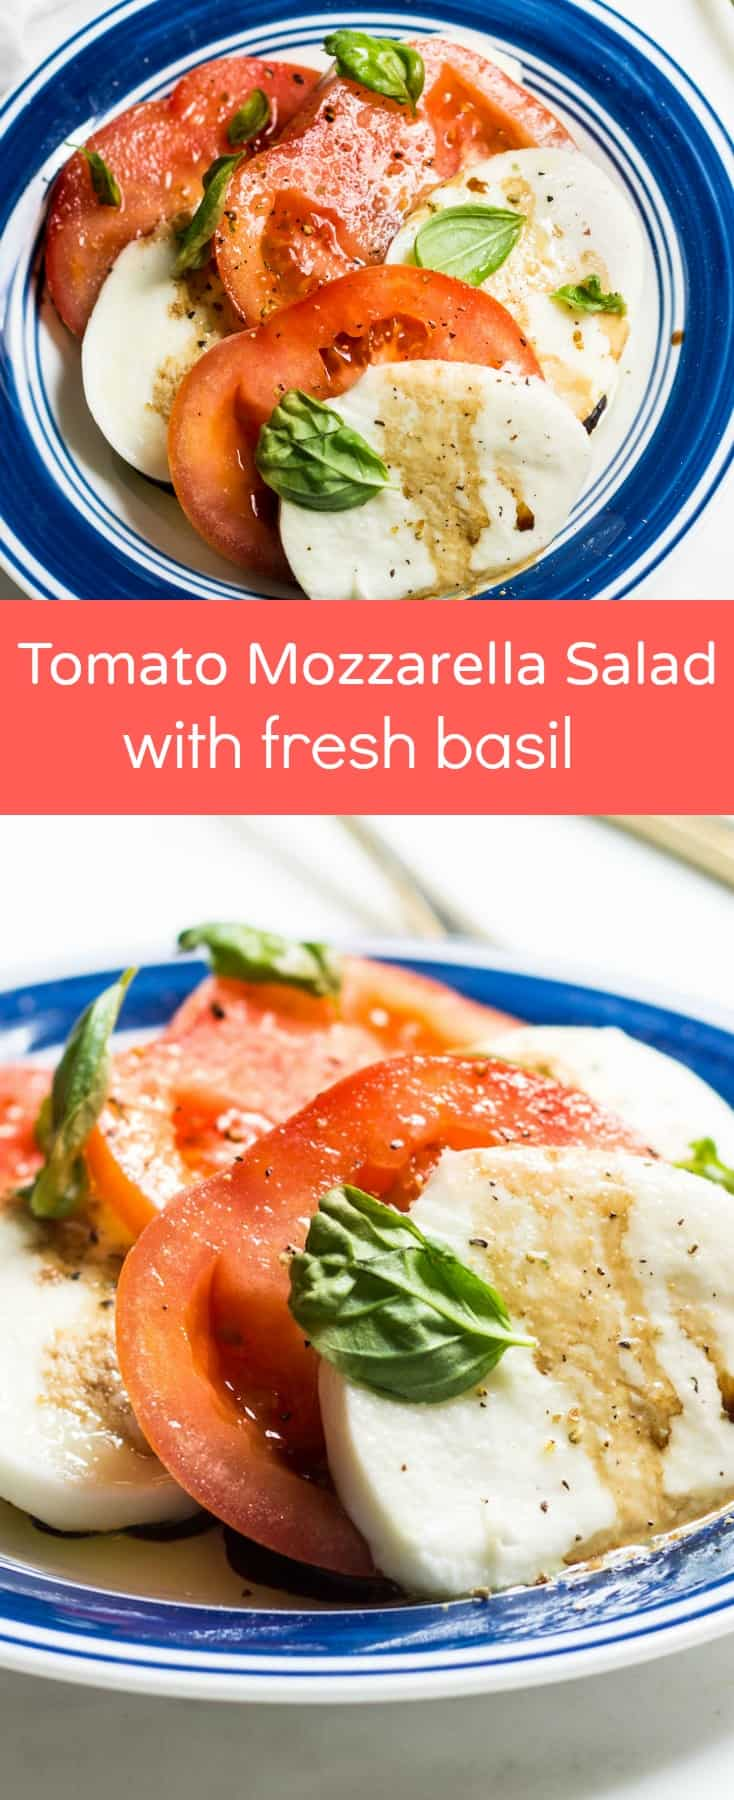 Tomato Mozzarella Salad with fresh basil! Recipe via MonPetitFour.com